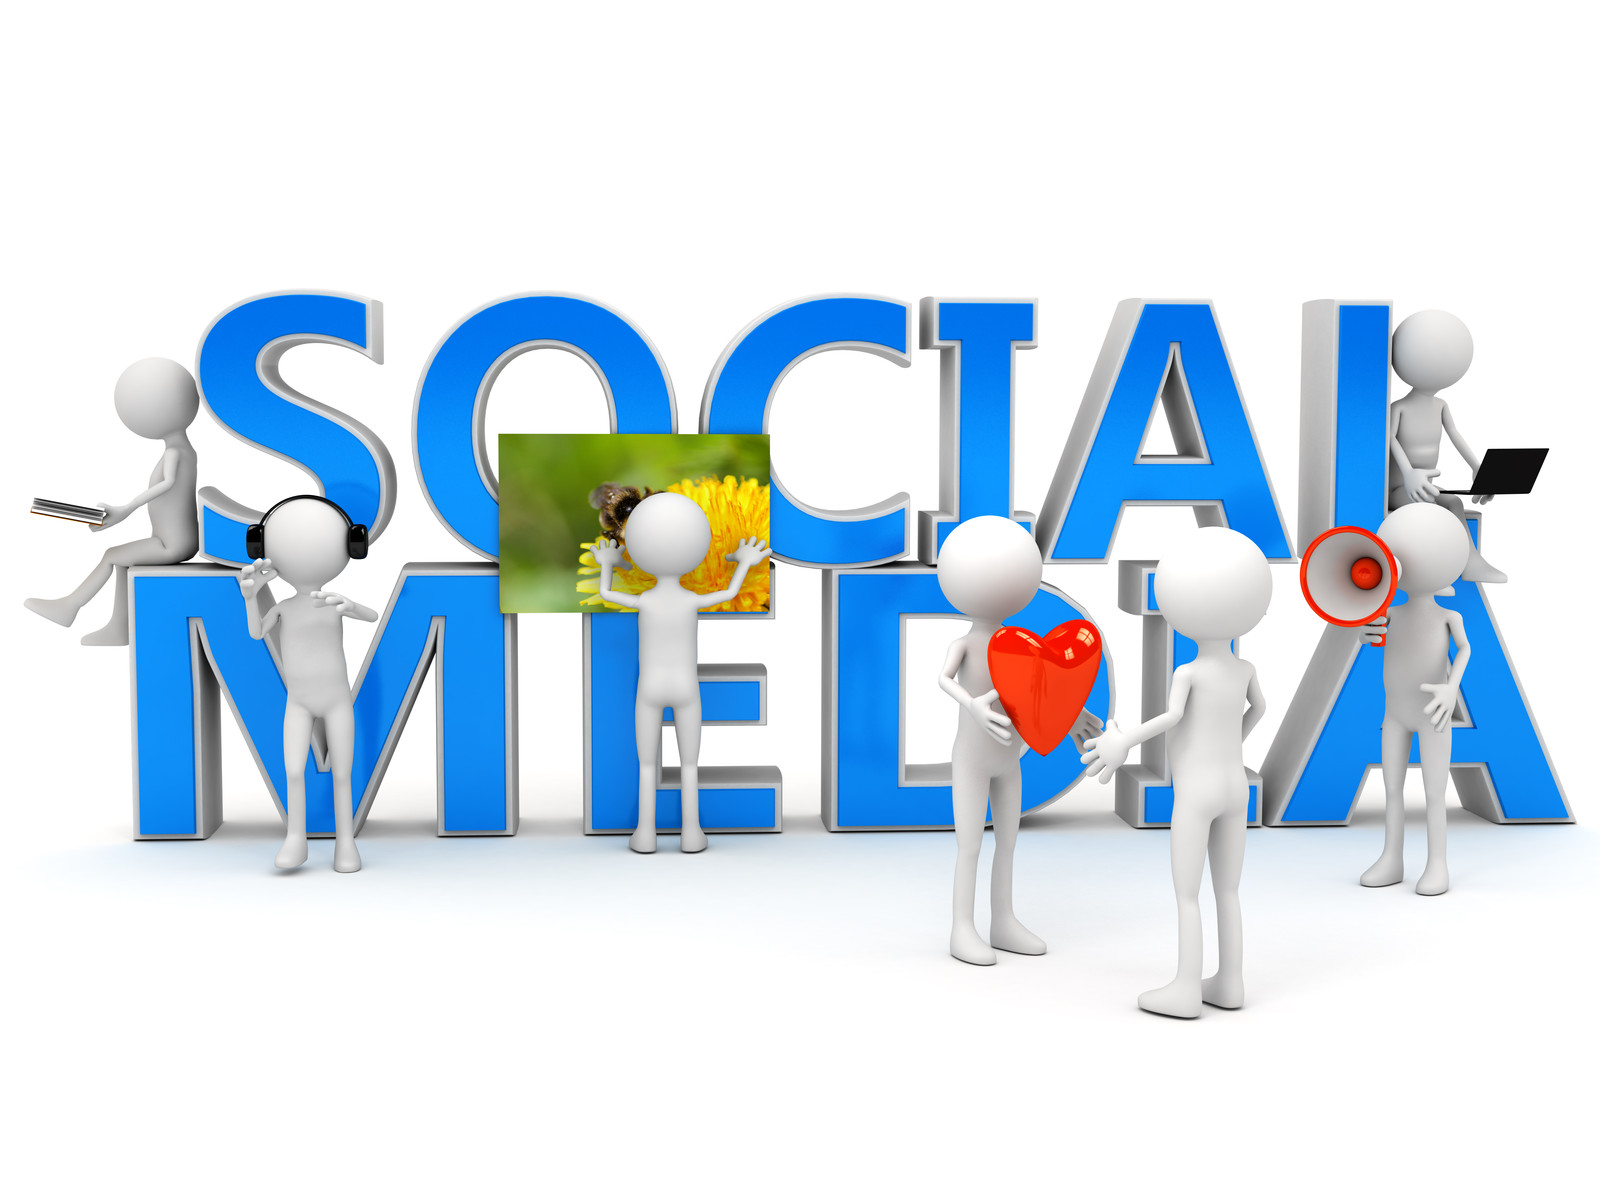 Making Social Media Marketing Feasible with Content Suggestion Tools